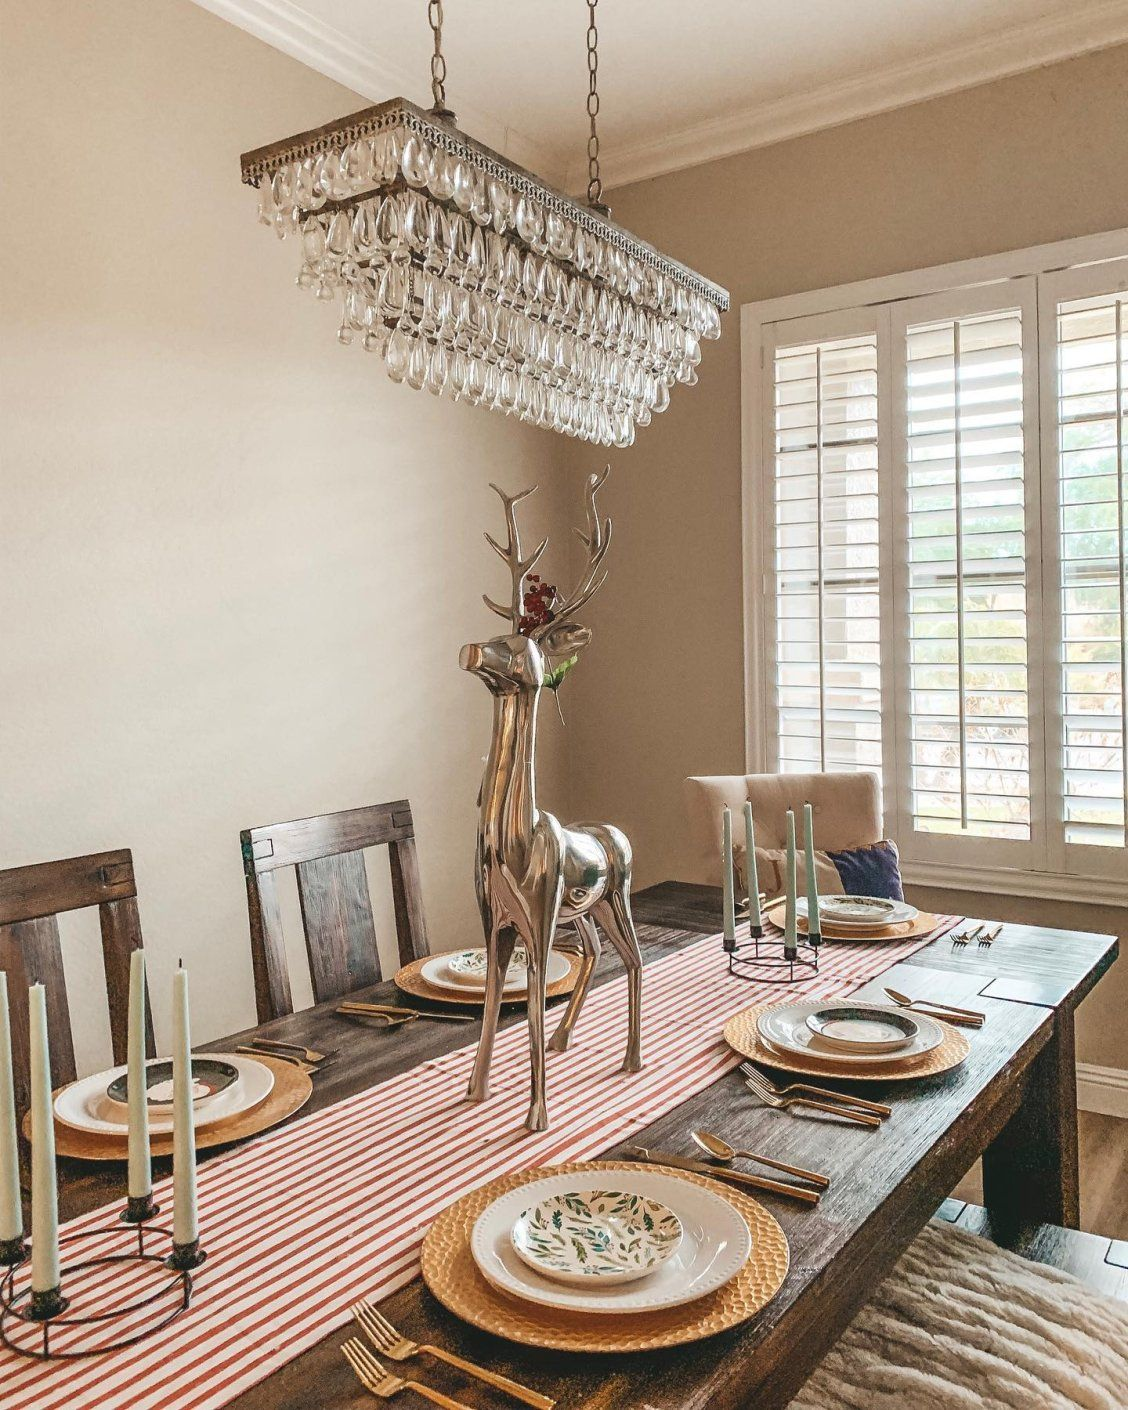 Can your dining décor be over the top? Uh, yes anything